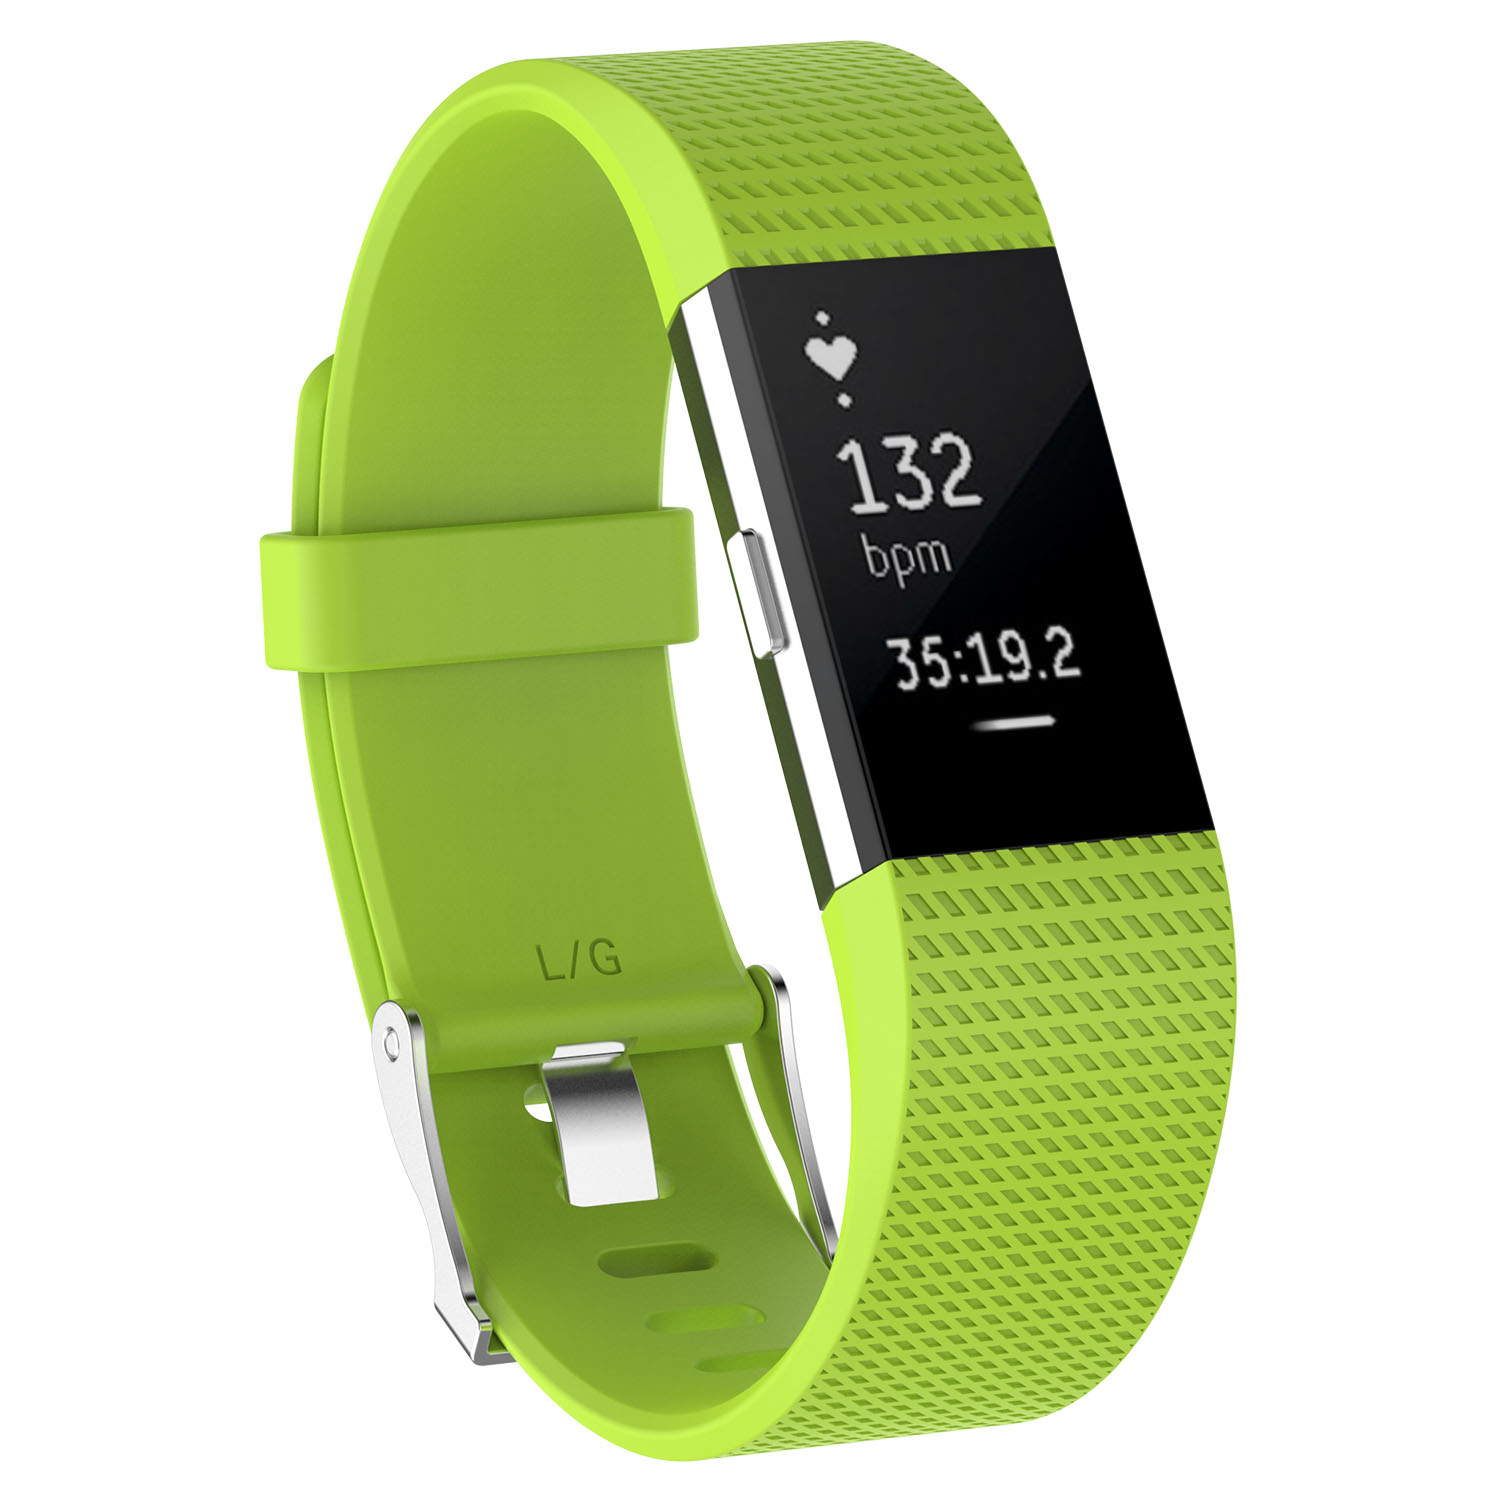 Replacement-Silicone-Wristband-Watch-Strap-Bands-Bracelet-For-Fitbit-Charge-2 thumbnail 62